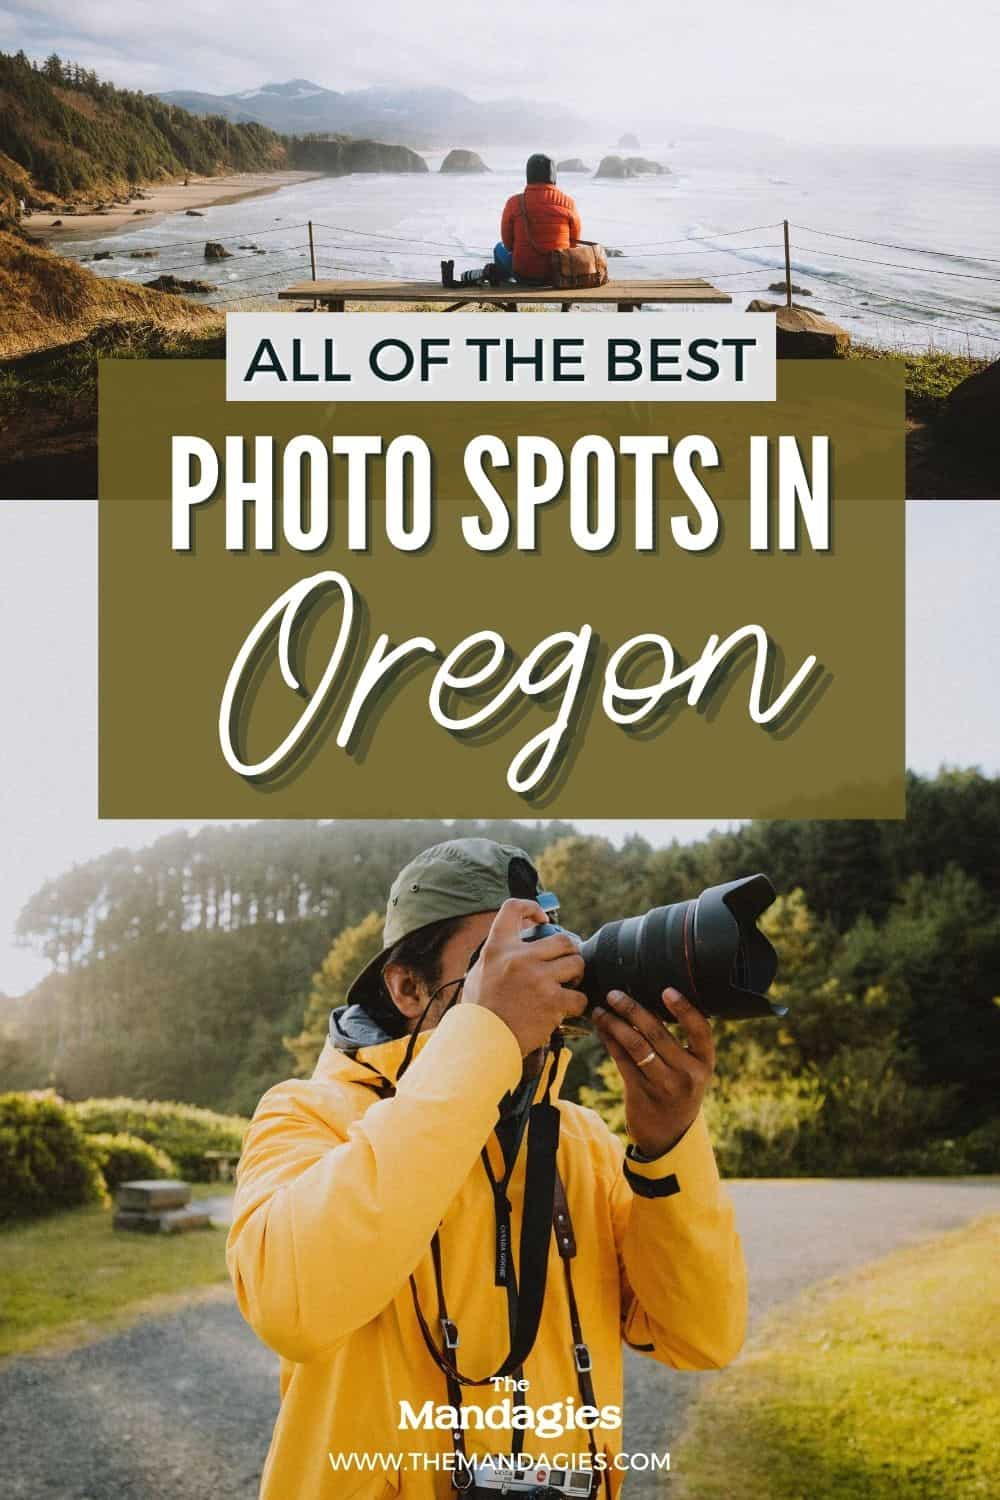 Looking for the best places to visit in Oregon? In this post, we're sharing Oregon's coolest photography locations, including iconic spots like Cannon Beach and Samuel H Boardman, but also secret hot springs, remote waterfalls, and more! Save this post for your next trip to Oregon! #Oregon #Oregoncoast #WestUSA #PNW #roadtripUSA #USAroadtrip #roadtrip #pacificNorthwest #multnomahfalls #cannonbeach #mountahood #cascademountains #portland #eugene